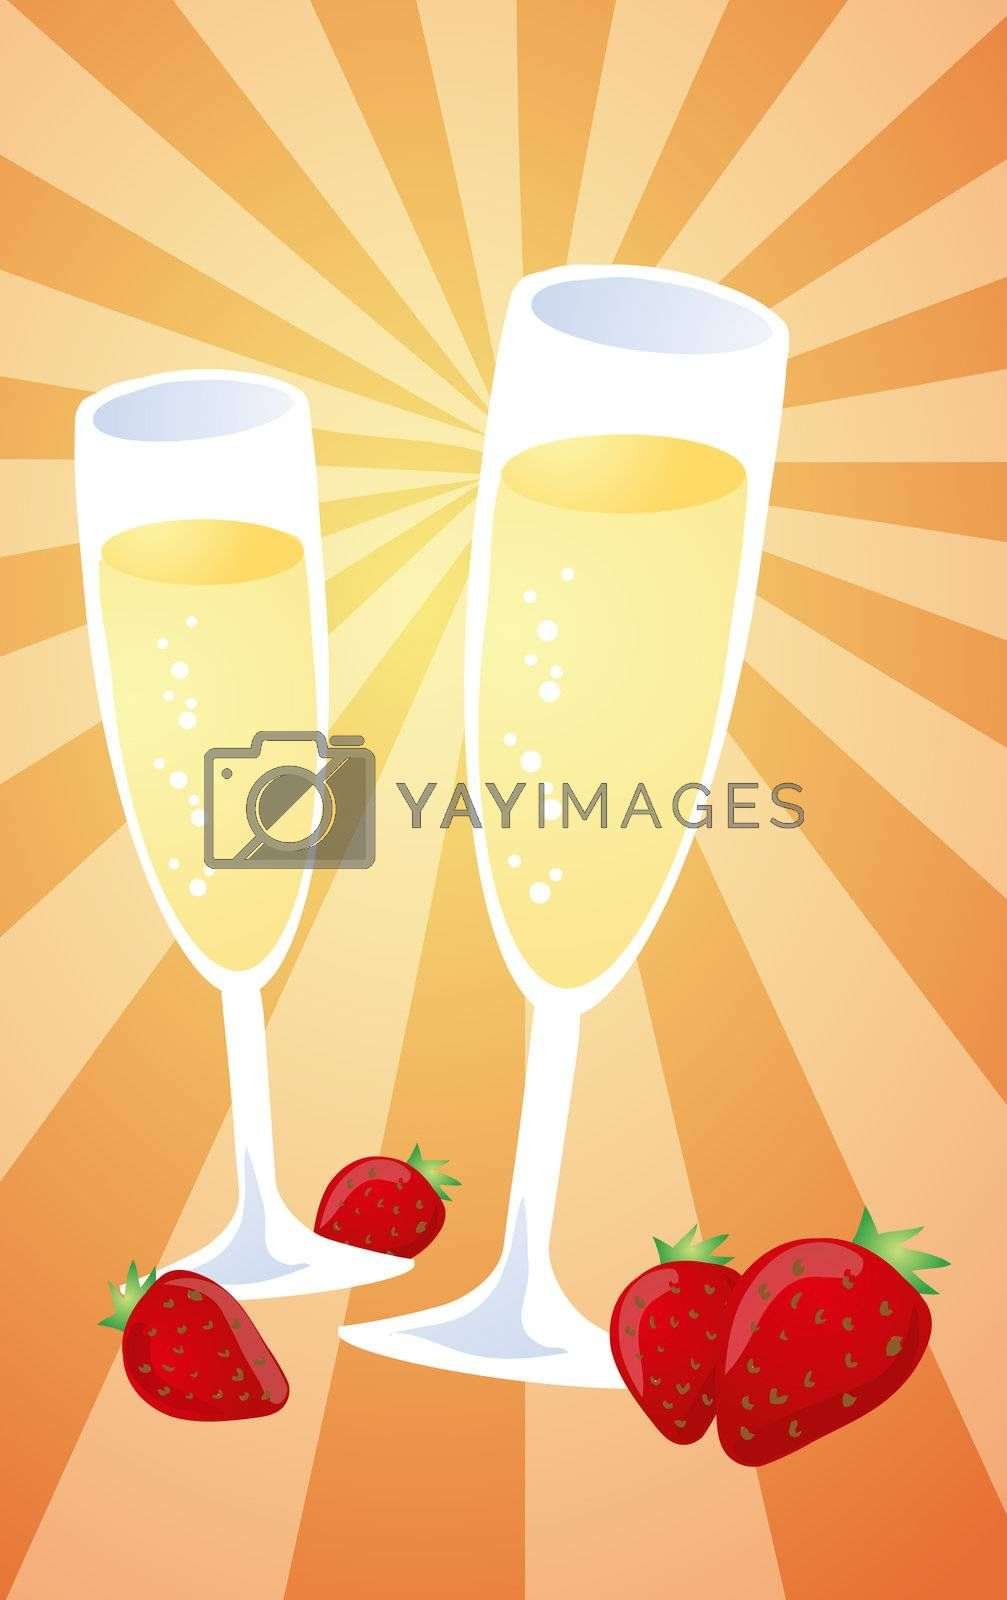 Royalty free image of Champagne and strawberries illustration by kgtoh